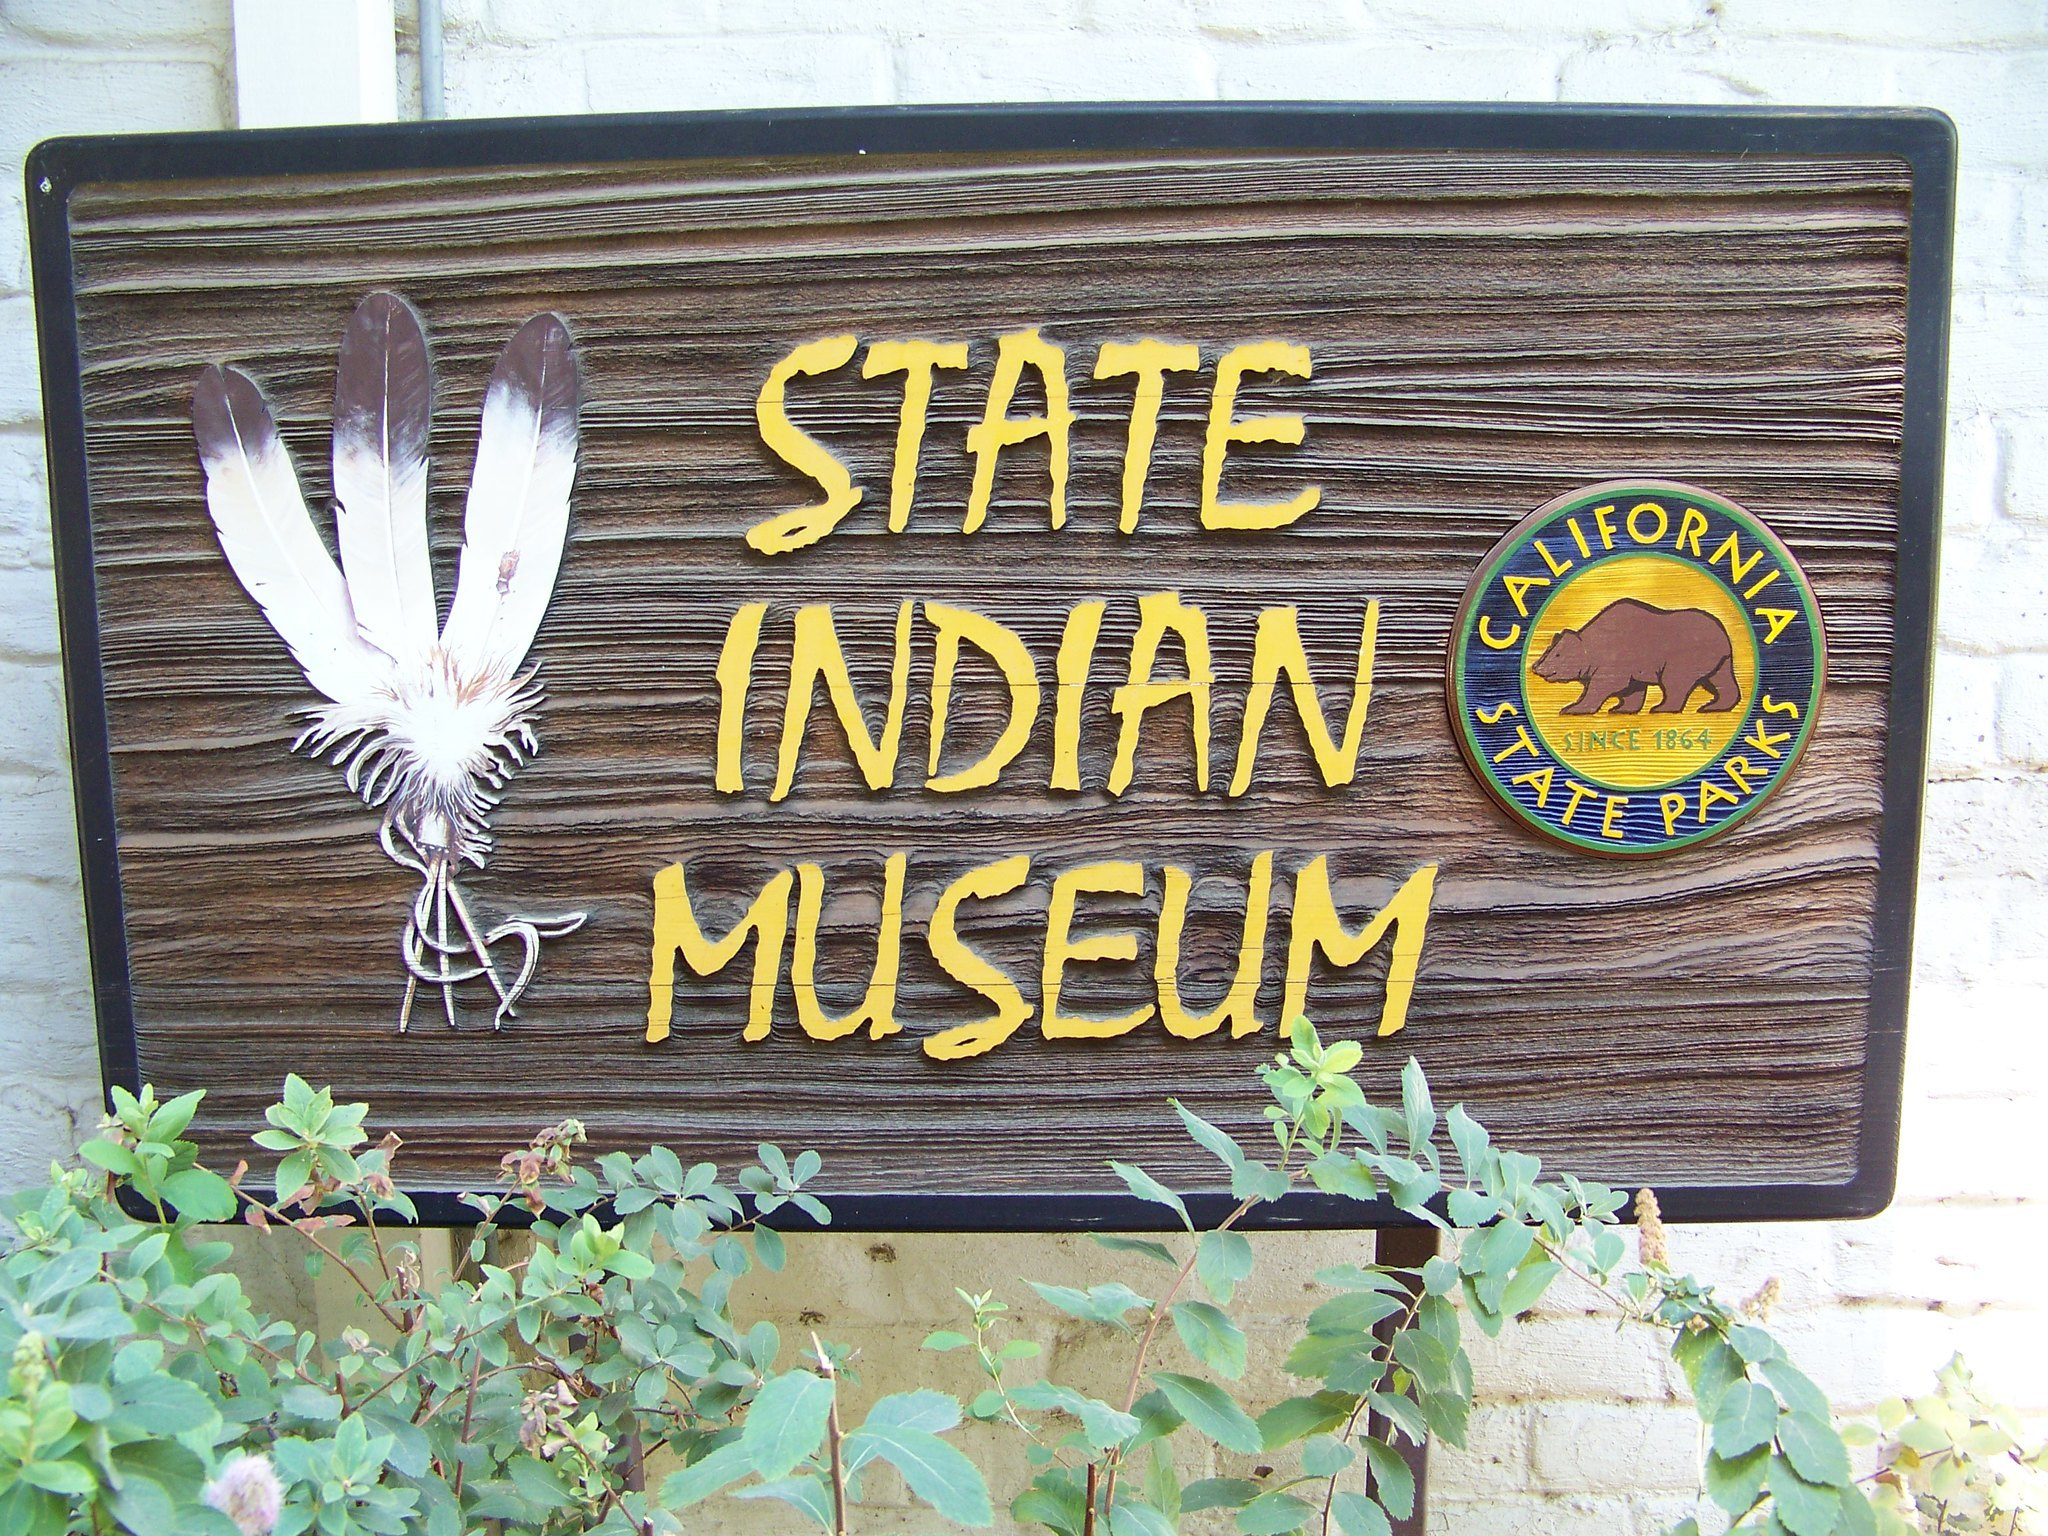 The sign for the State Indian Museum